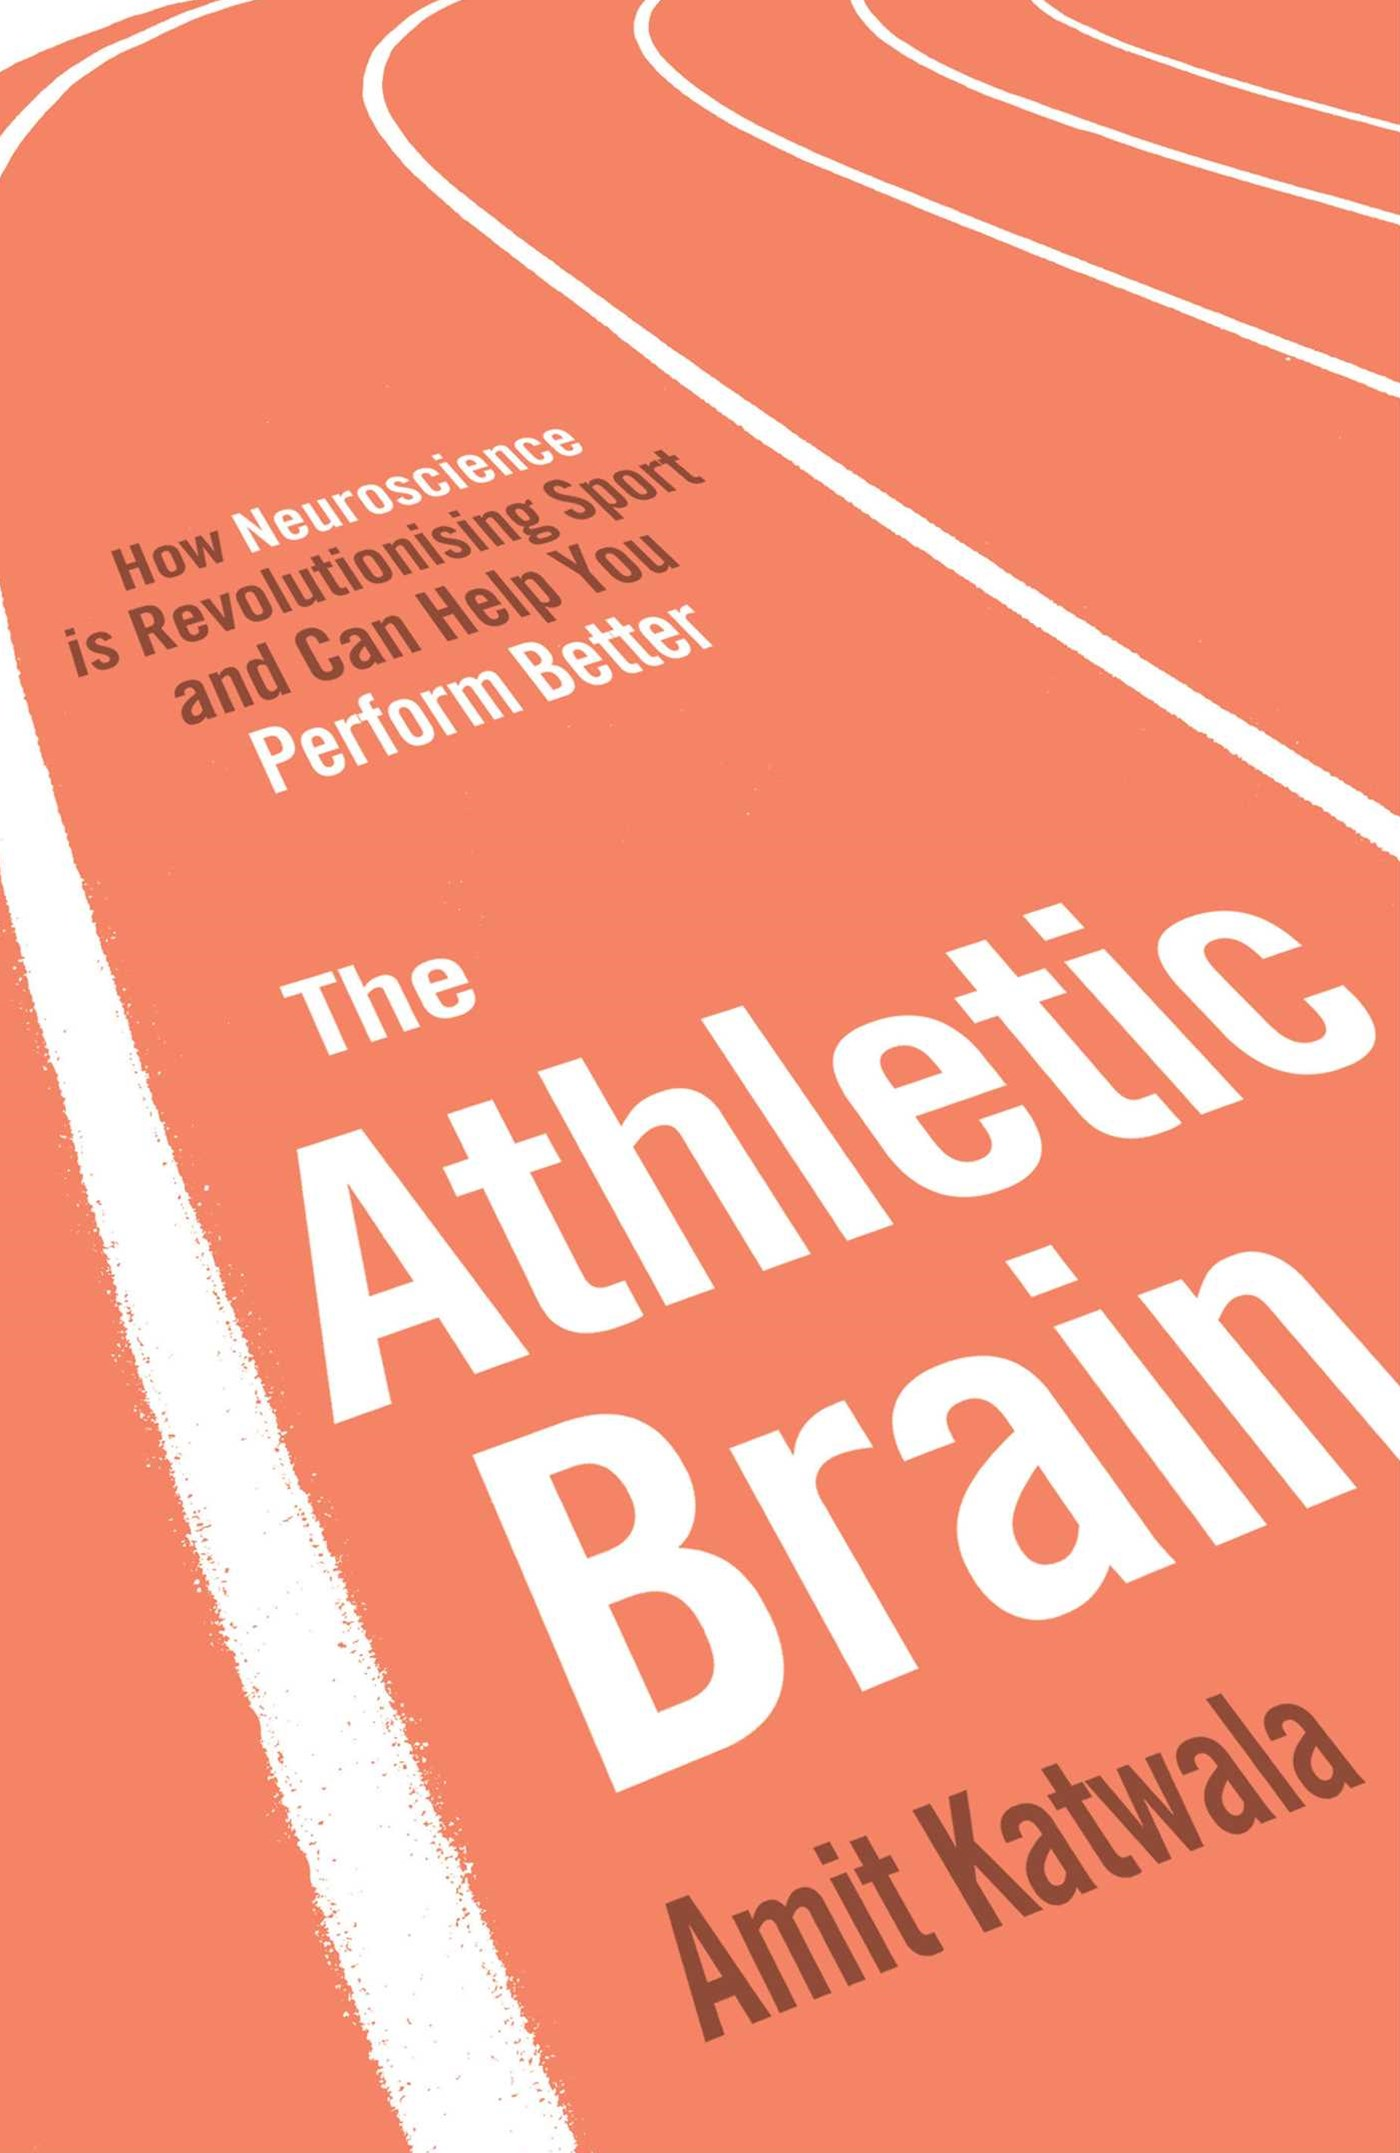 The Athletic Brain: How Neuroscience is Revolutionising Sport